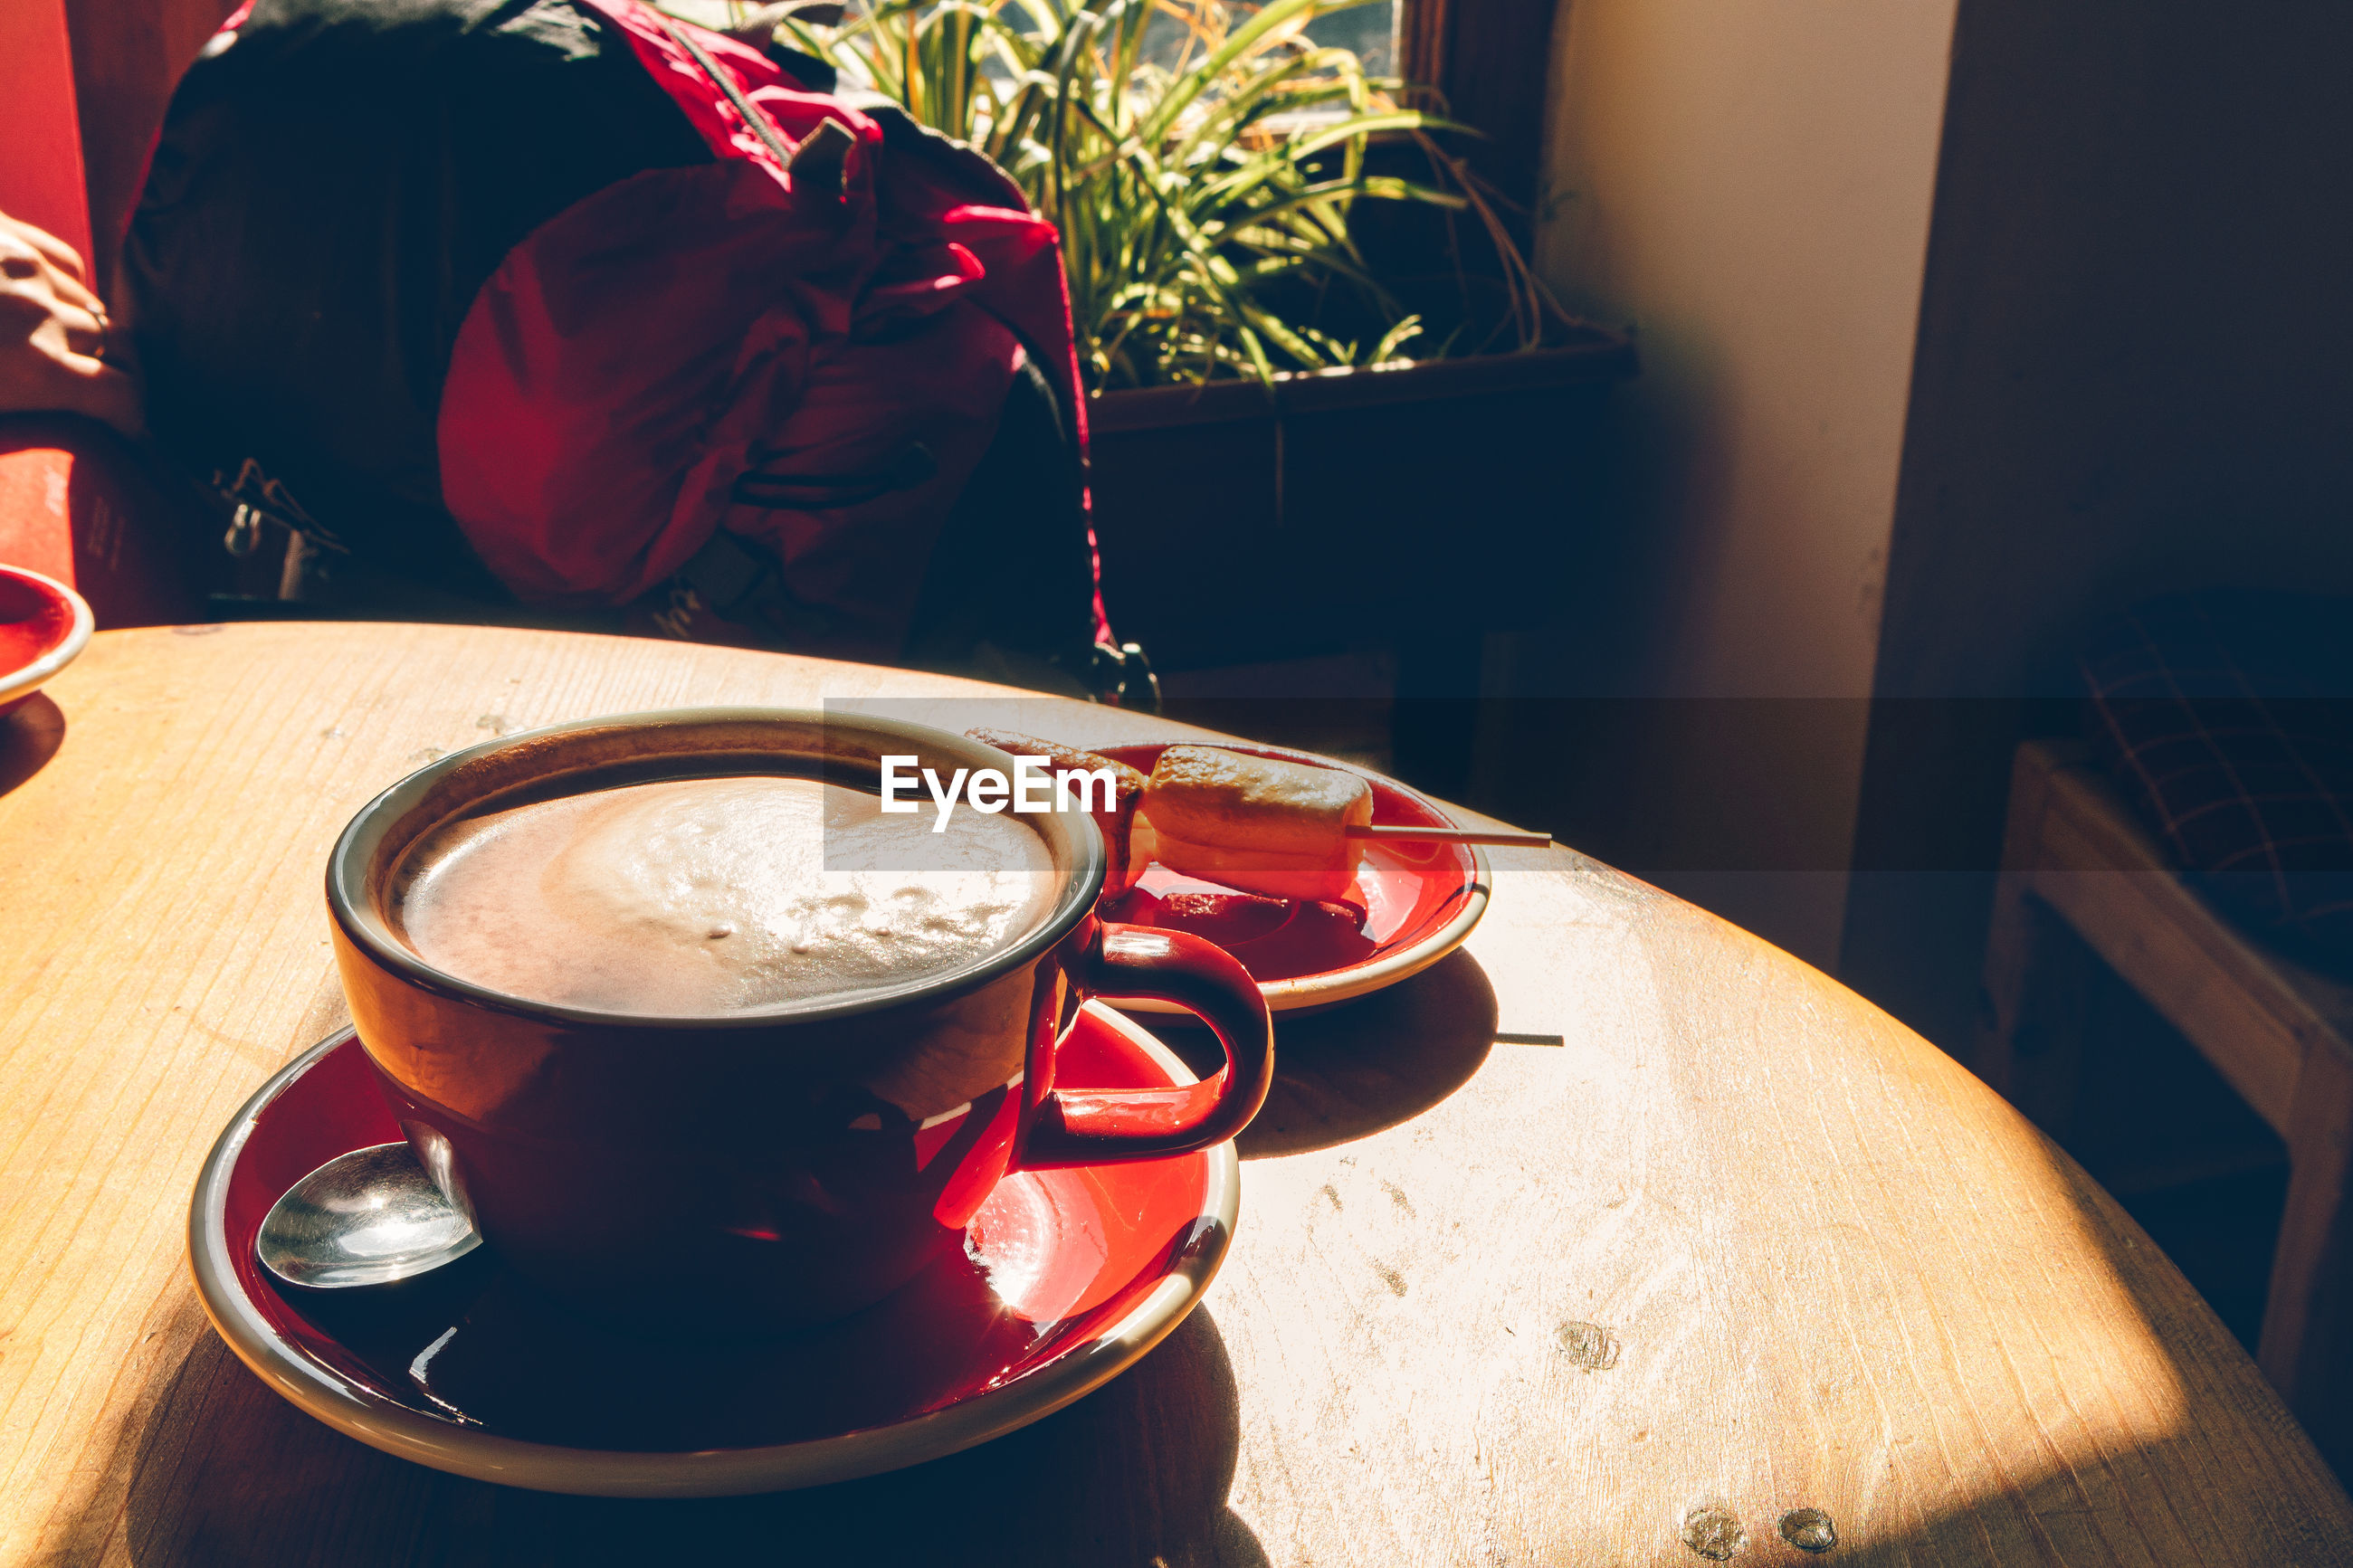 HIGH ANGLE VIEW OF COFFEE CUP ON TABLE AT CAFE